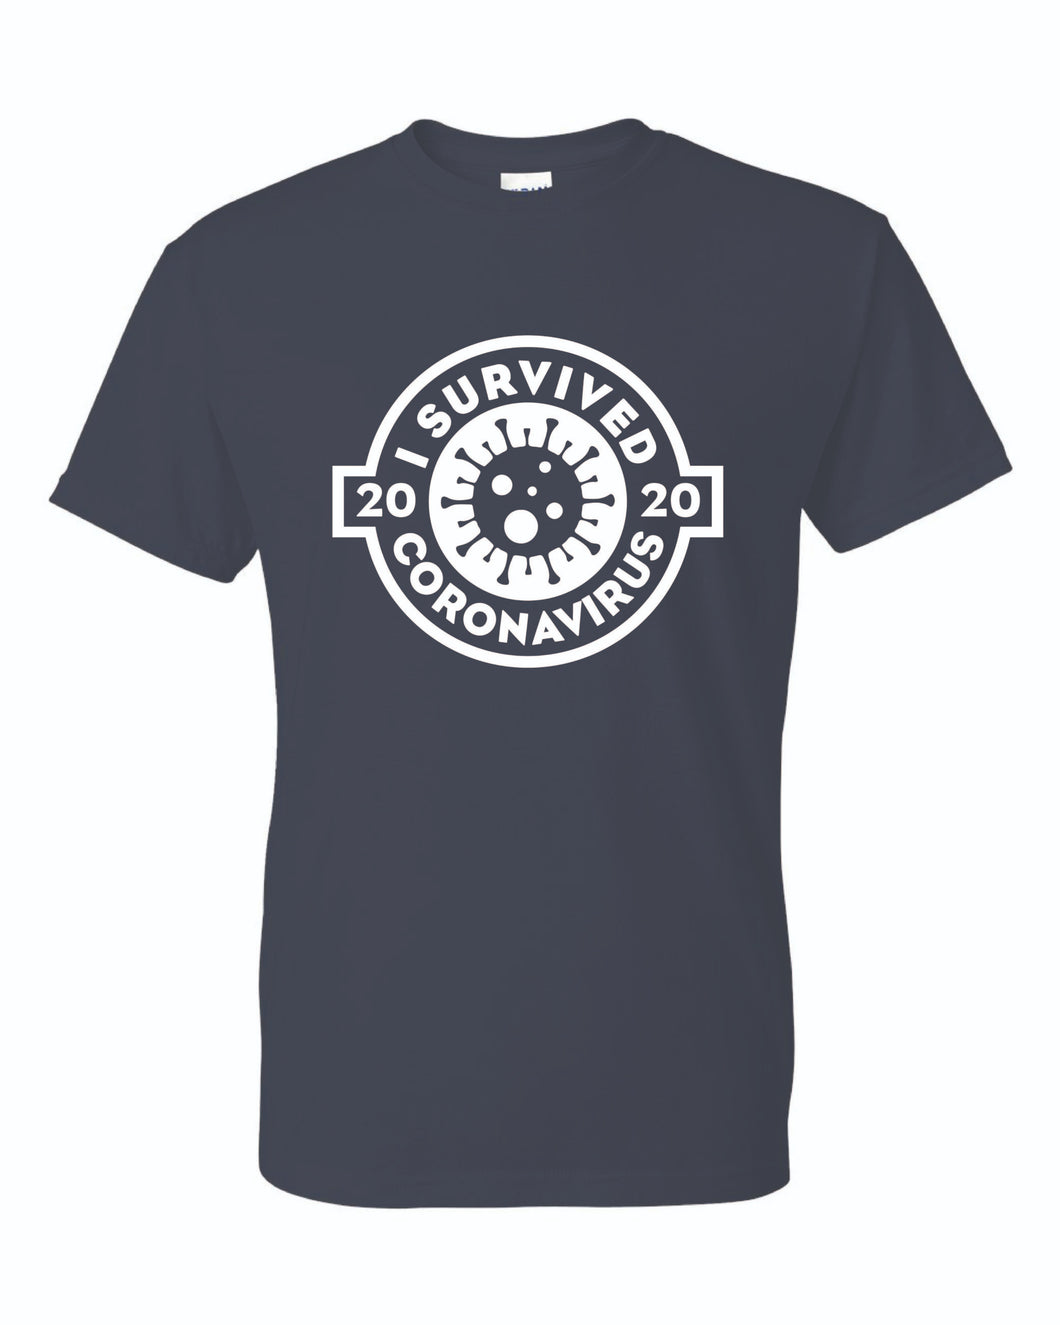 Waystation's - I survived Coronavirus 2020 Short Sleeve T-shirt